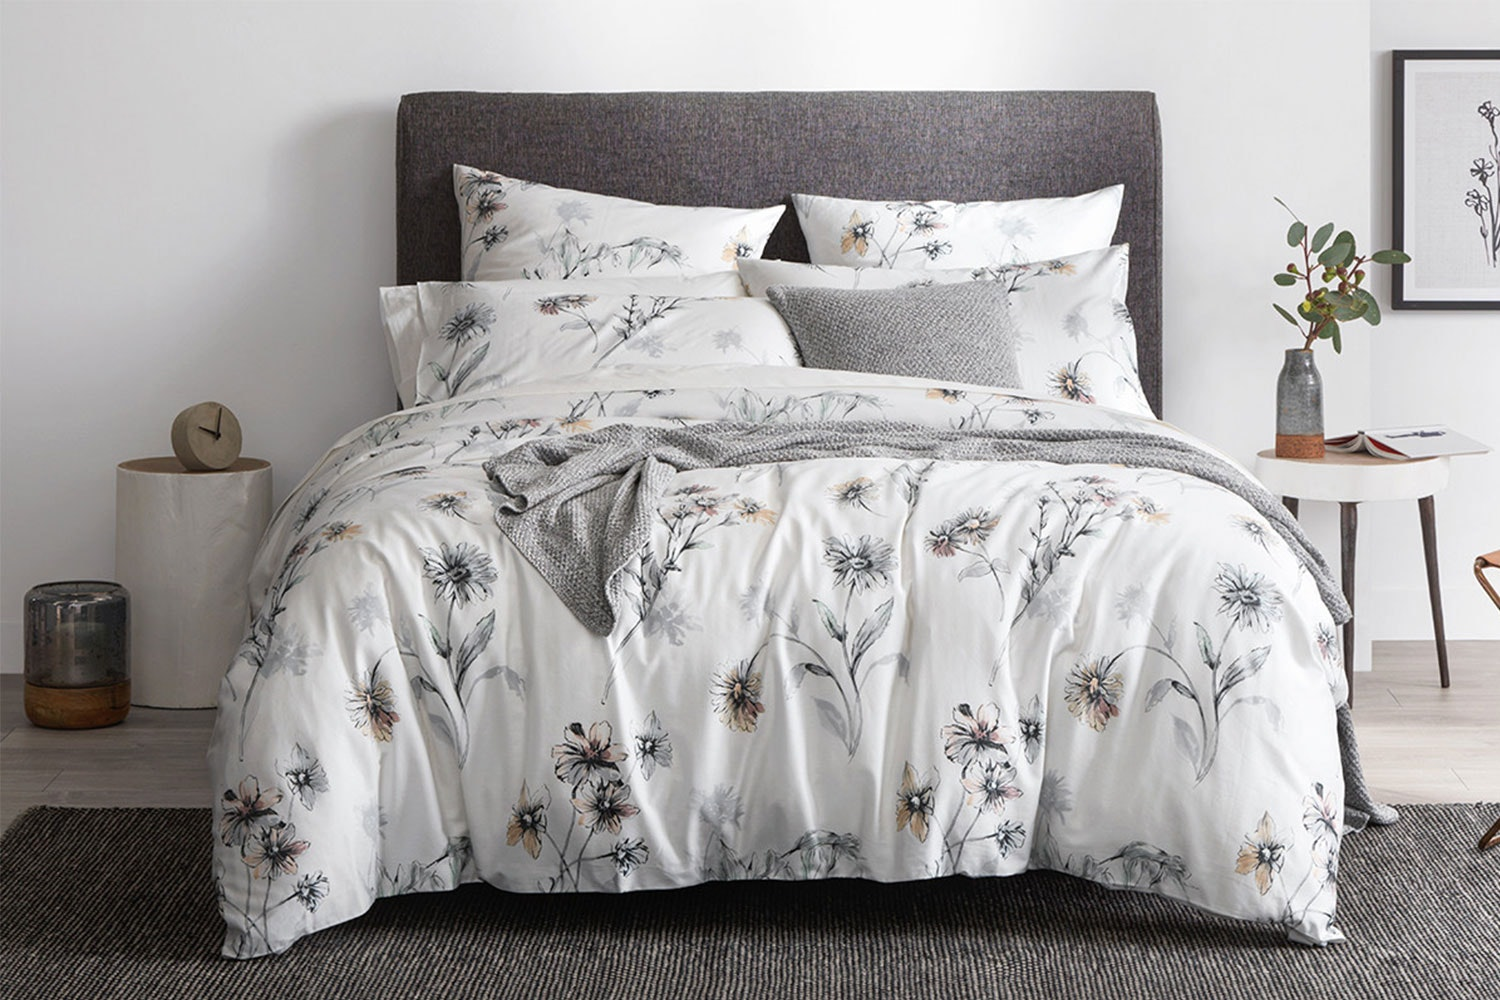 Fernvale White Duvet Cover Set by Sheridan